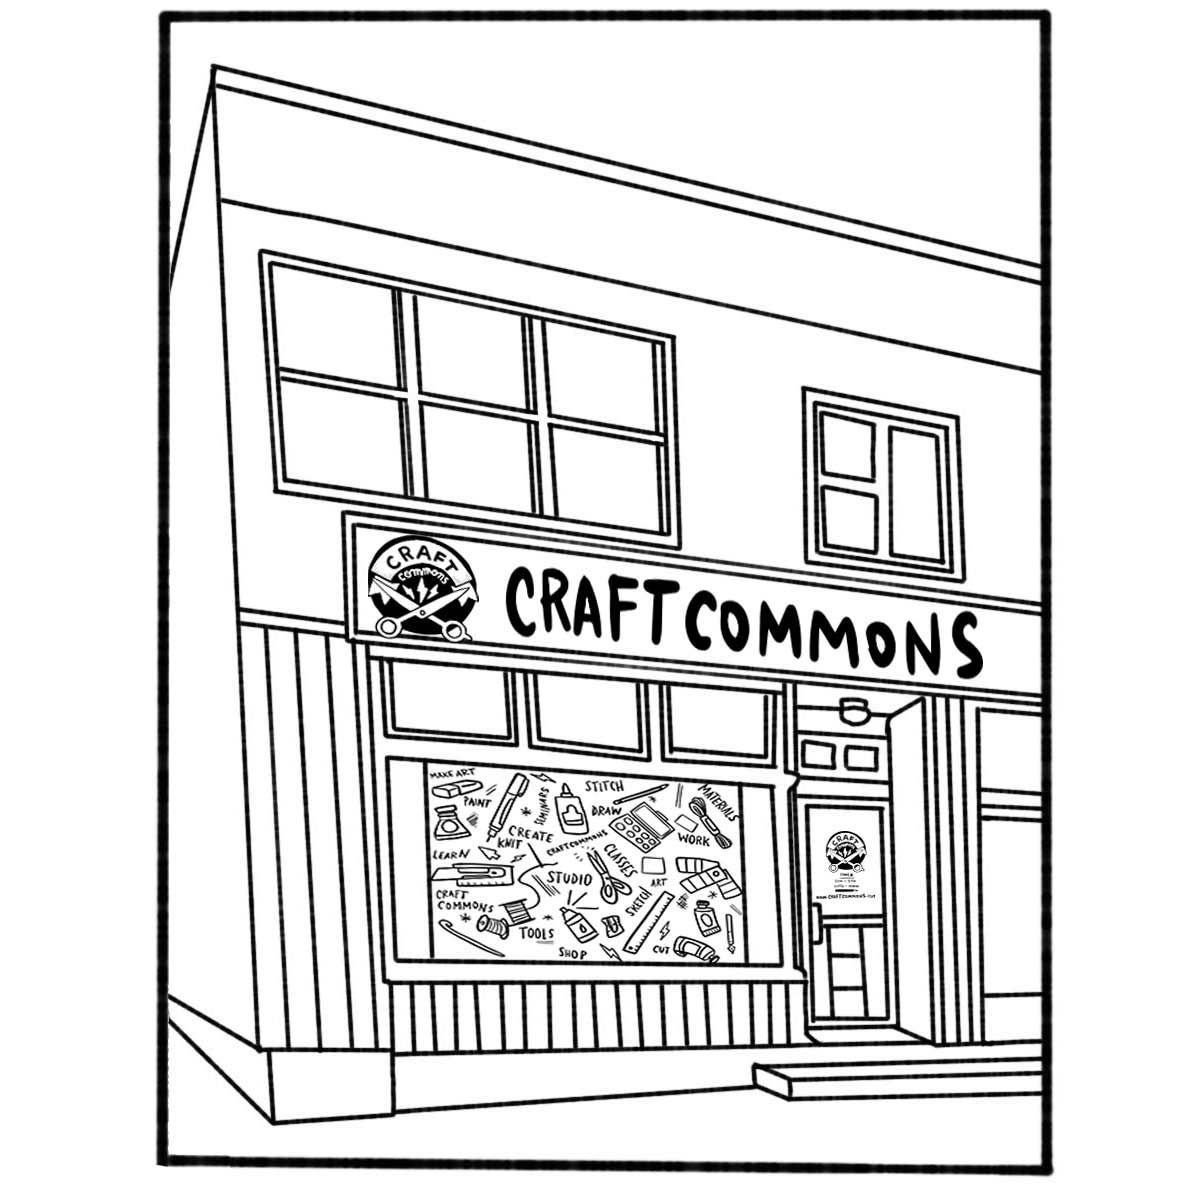 Illustrated mockup of the Craft Commons storefront front side angle